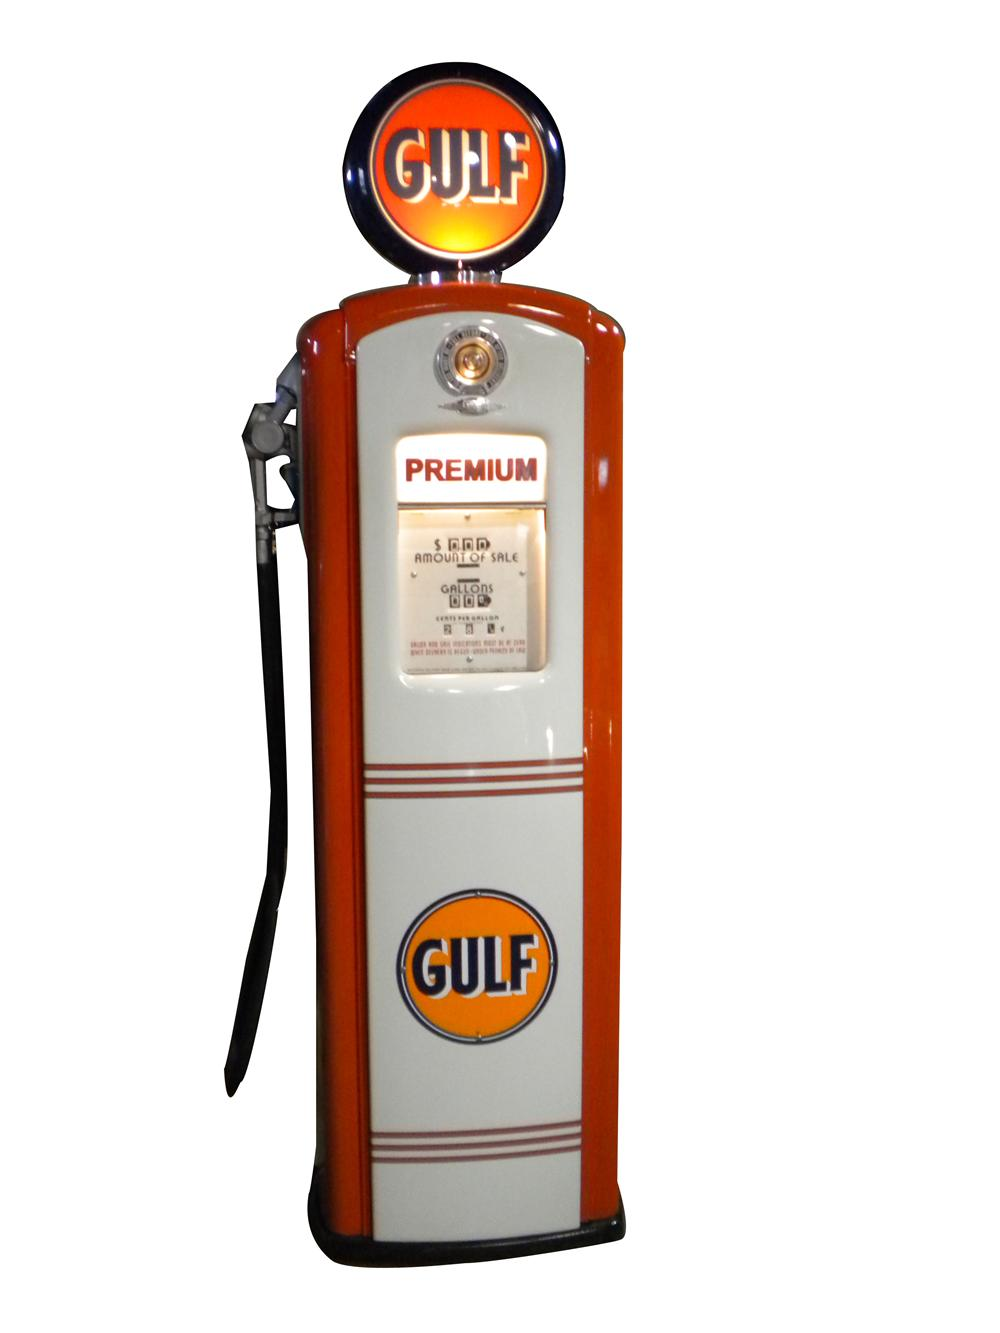 Magnificent late 1940s-50s Gulf Oil Bennett restored service station gas pump. - Front 3/4 - 139896